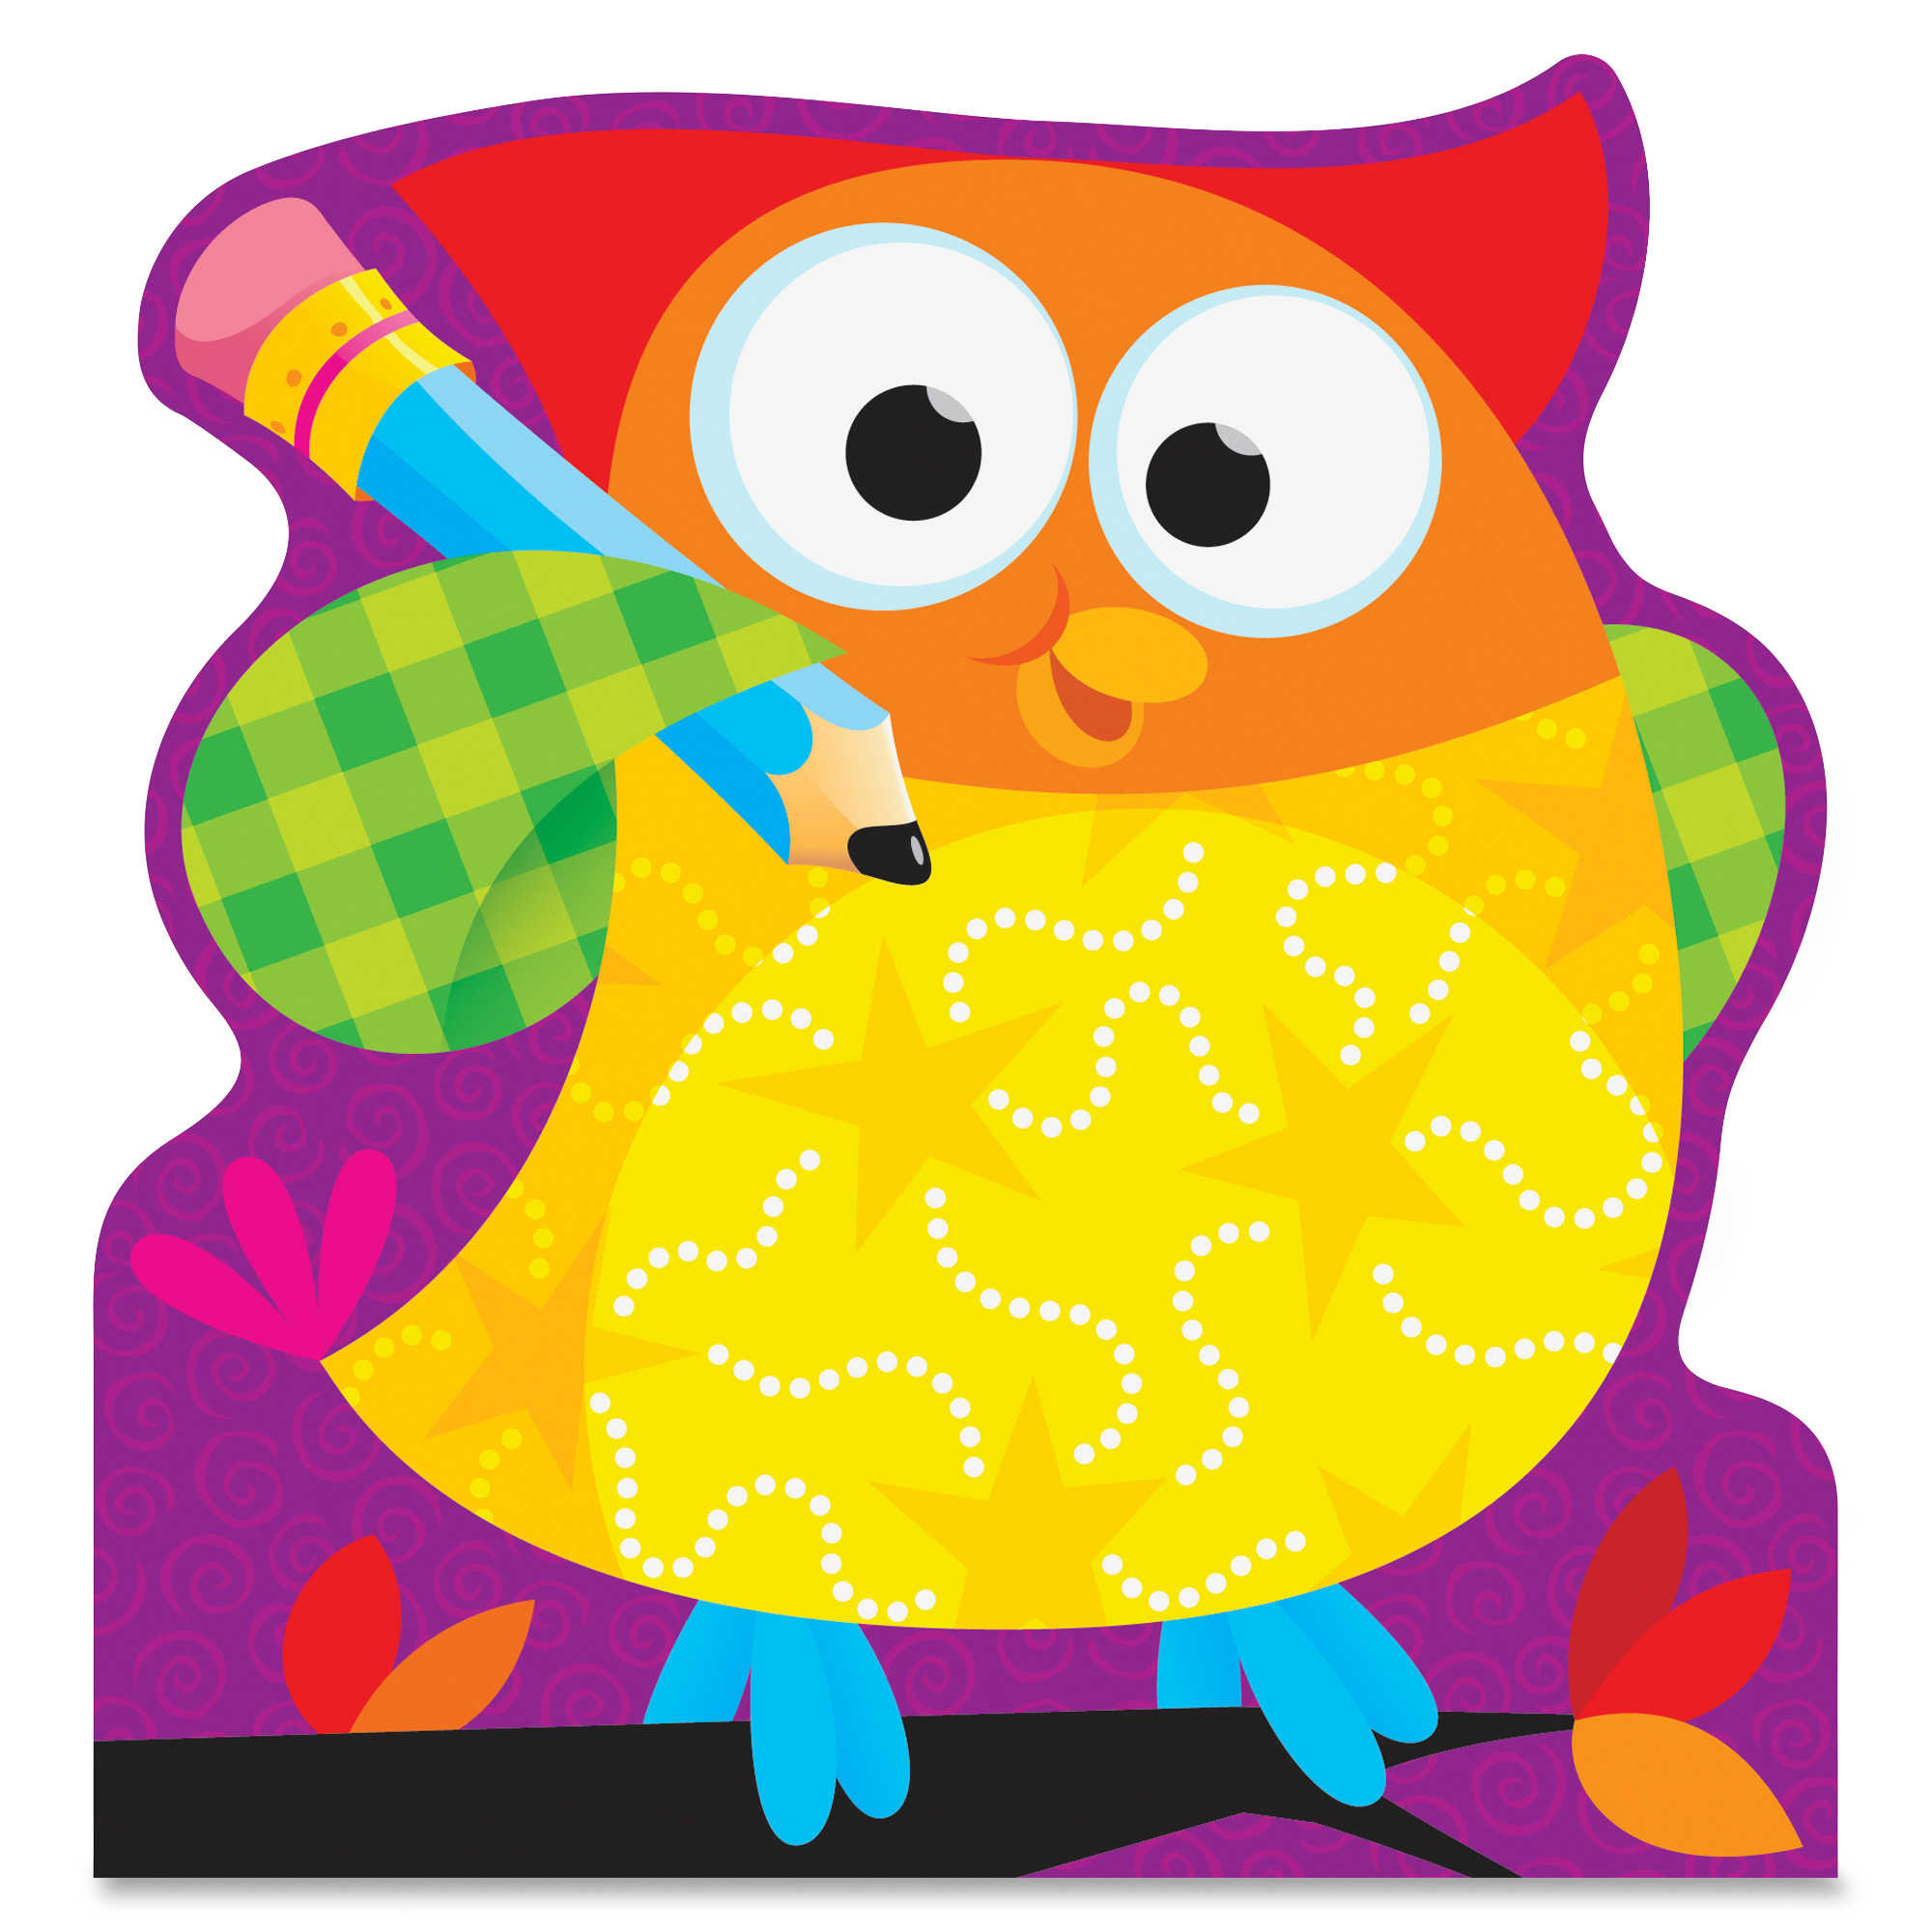 Trend Owl-stars Shaped Note Pads - 50 Sheets - Printed - 5' X 5' - Multicolor Paper (tep-72076)